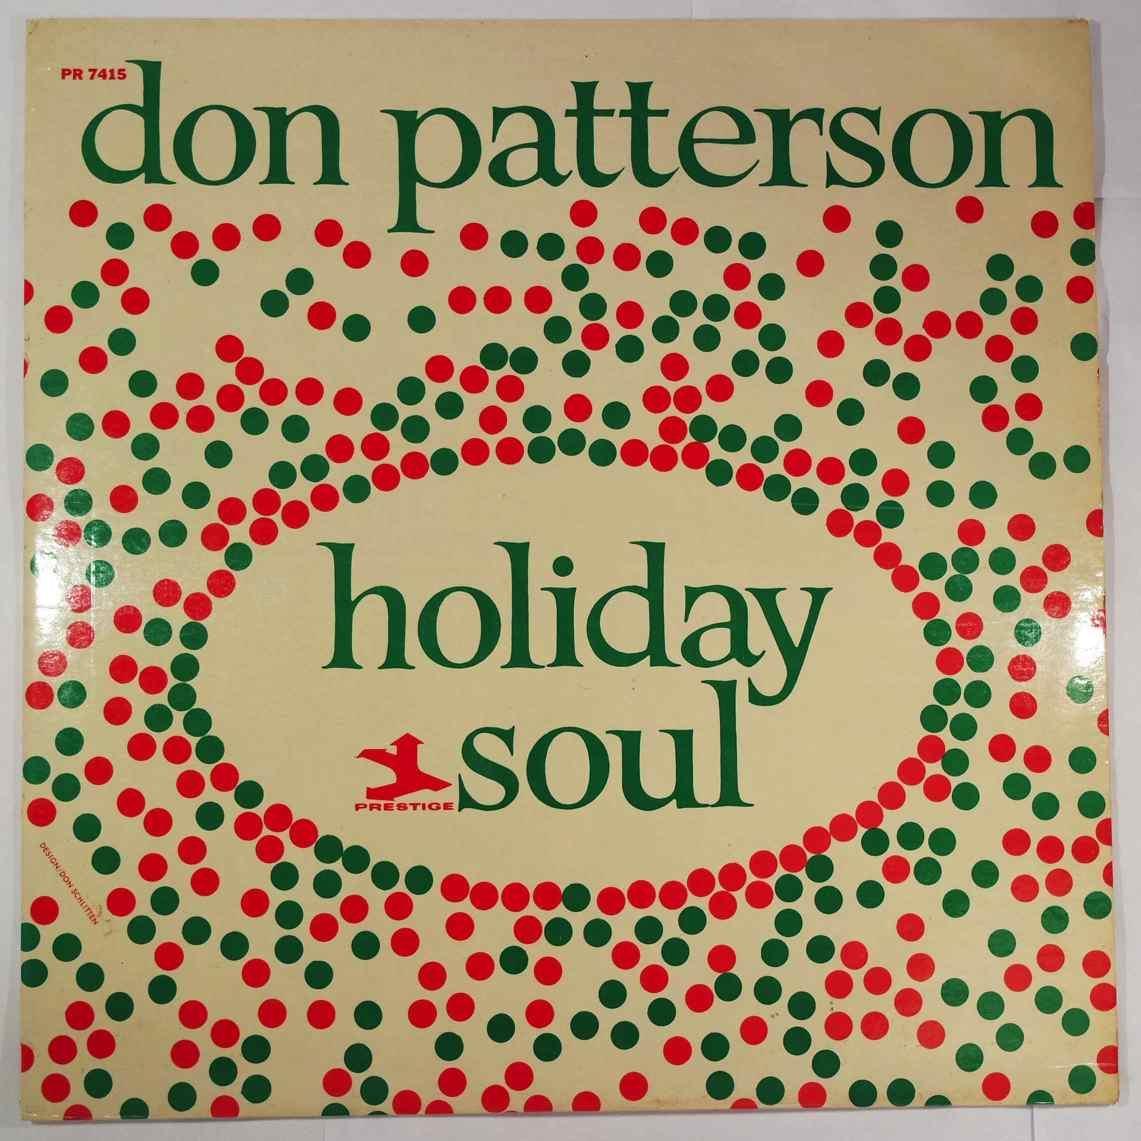 Don Patterson Holiday Soul